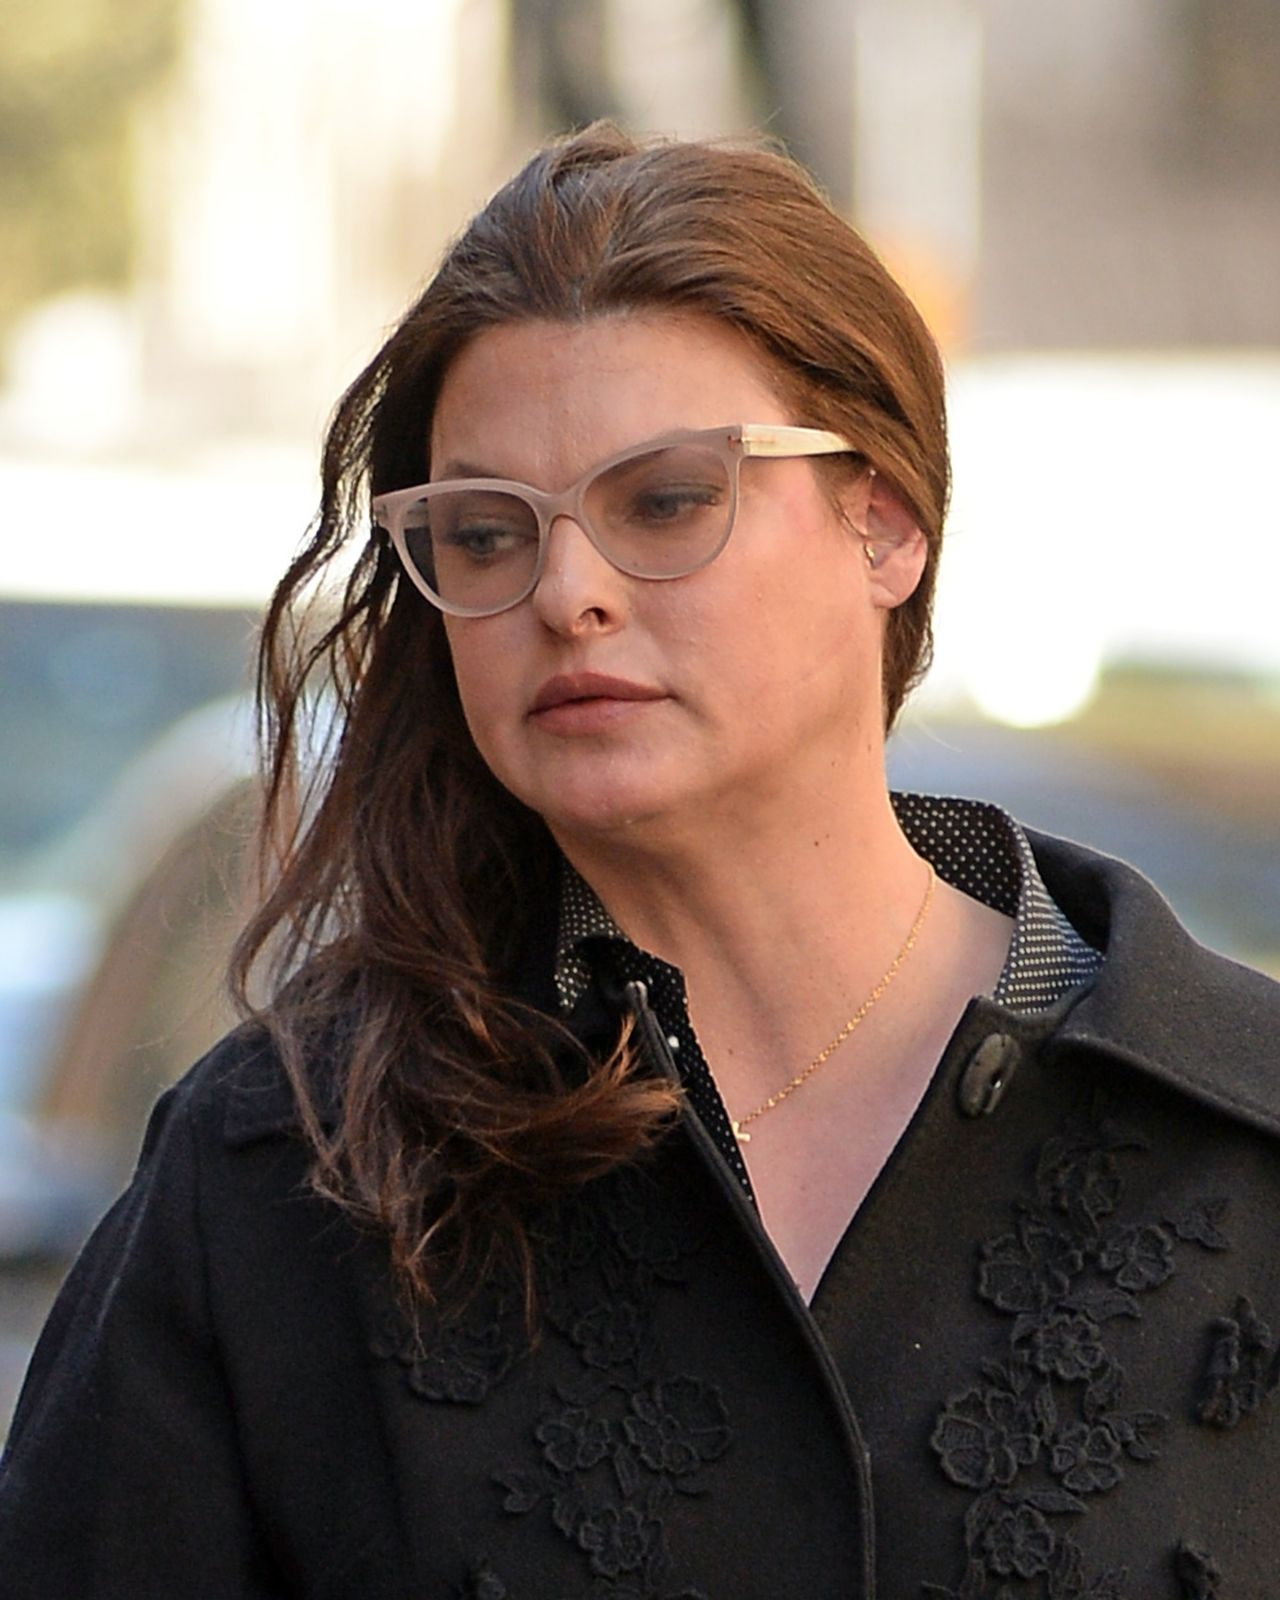 Linda Evangelista Nearly Unrecognizable Out The West